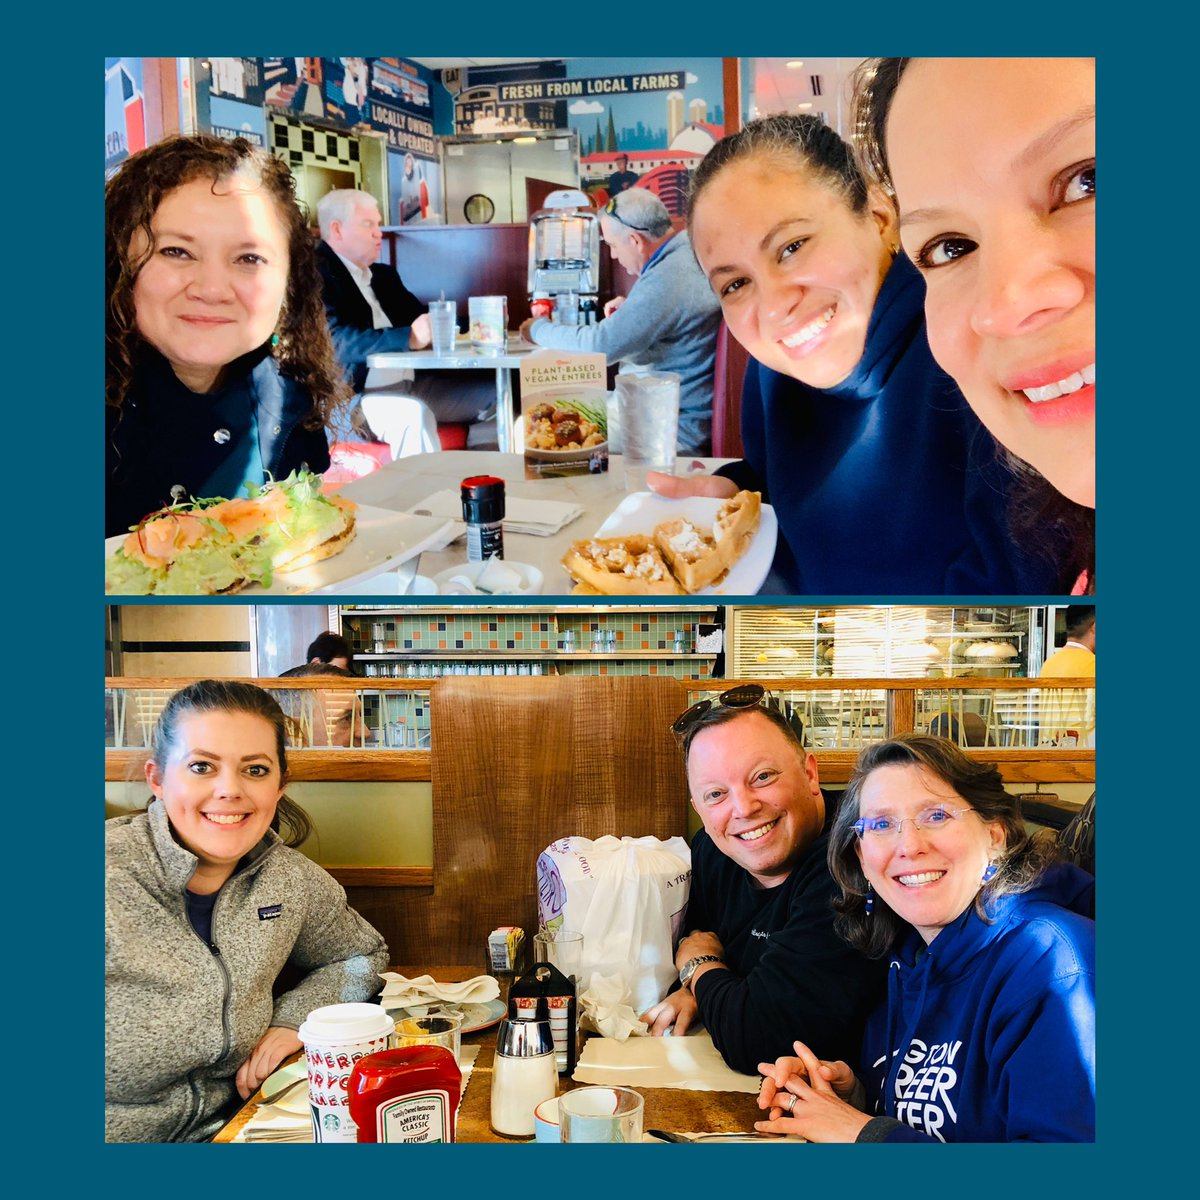 When school is unexpectedly closed due to a water main break, a working breakfast is on top of our agenda! Thanks Metro 29 & Silver Diner! <a target='_blank' href='http://twitter.com/APSCCMartinez'>@APSCCMartinez</a> <a target='_blank' href='http://twitter.com/ACCHilt_Inst'>@ACCHilt_Inst</a> <a target='_blank' href='http://twitter.com/arlingtontechcc'>@arlingtontechcc</a> <a target='_blank' href='http://twitter.com/APSCareerCenter'>@APSCareerCenter</a> <a target='_blank' href='https://t.co/aqqHpGMFsi'>https://t.co/aqqHpGMFsi</a>